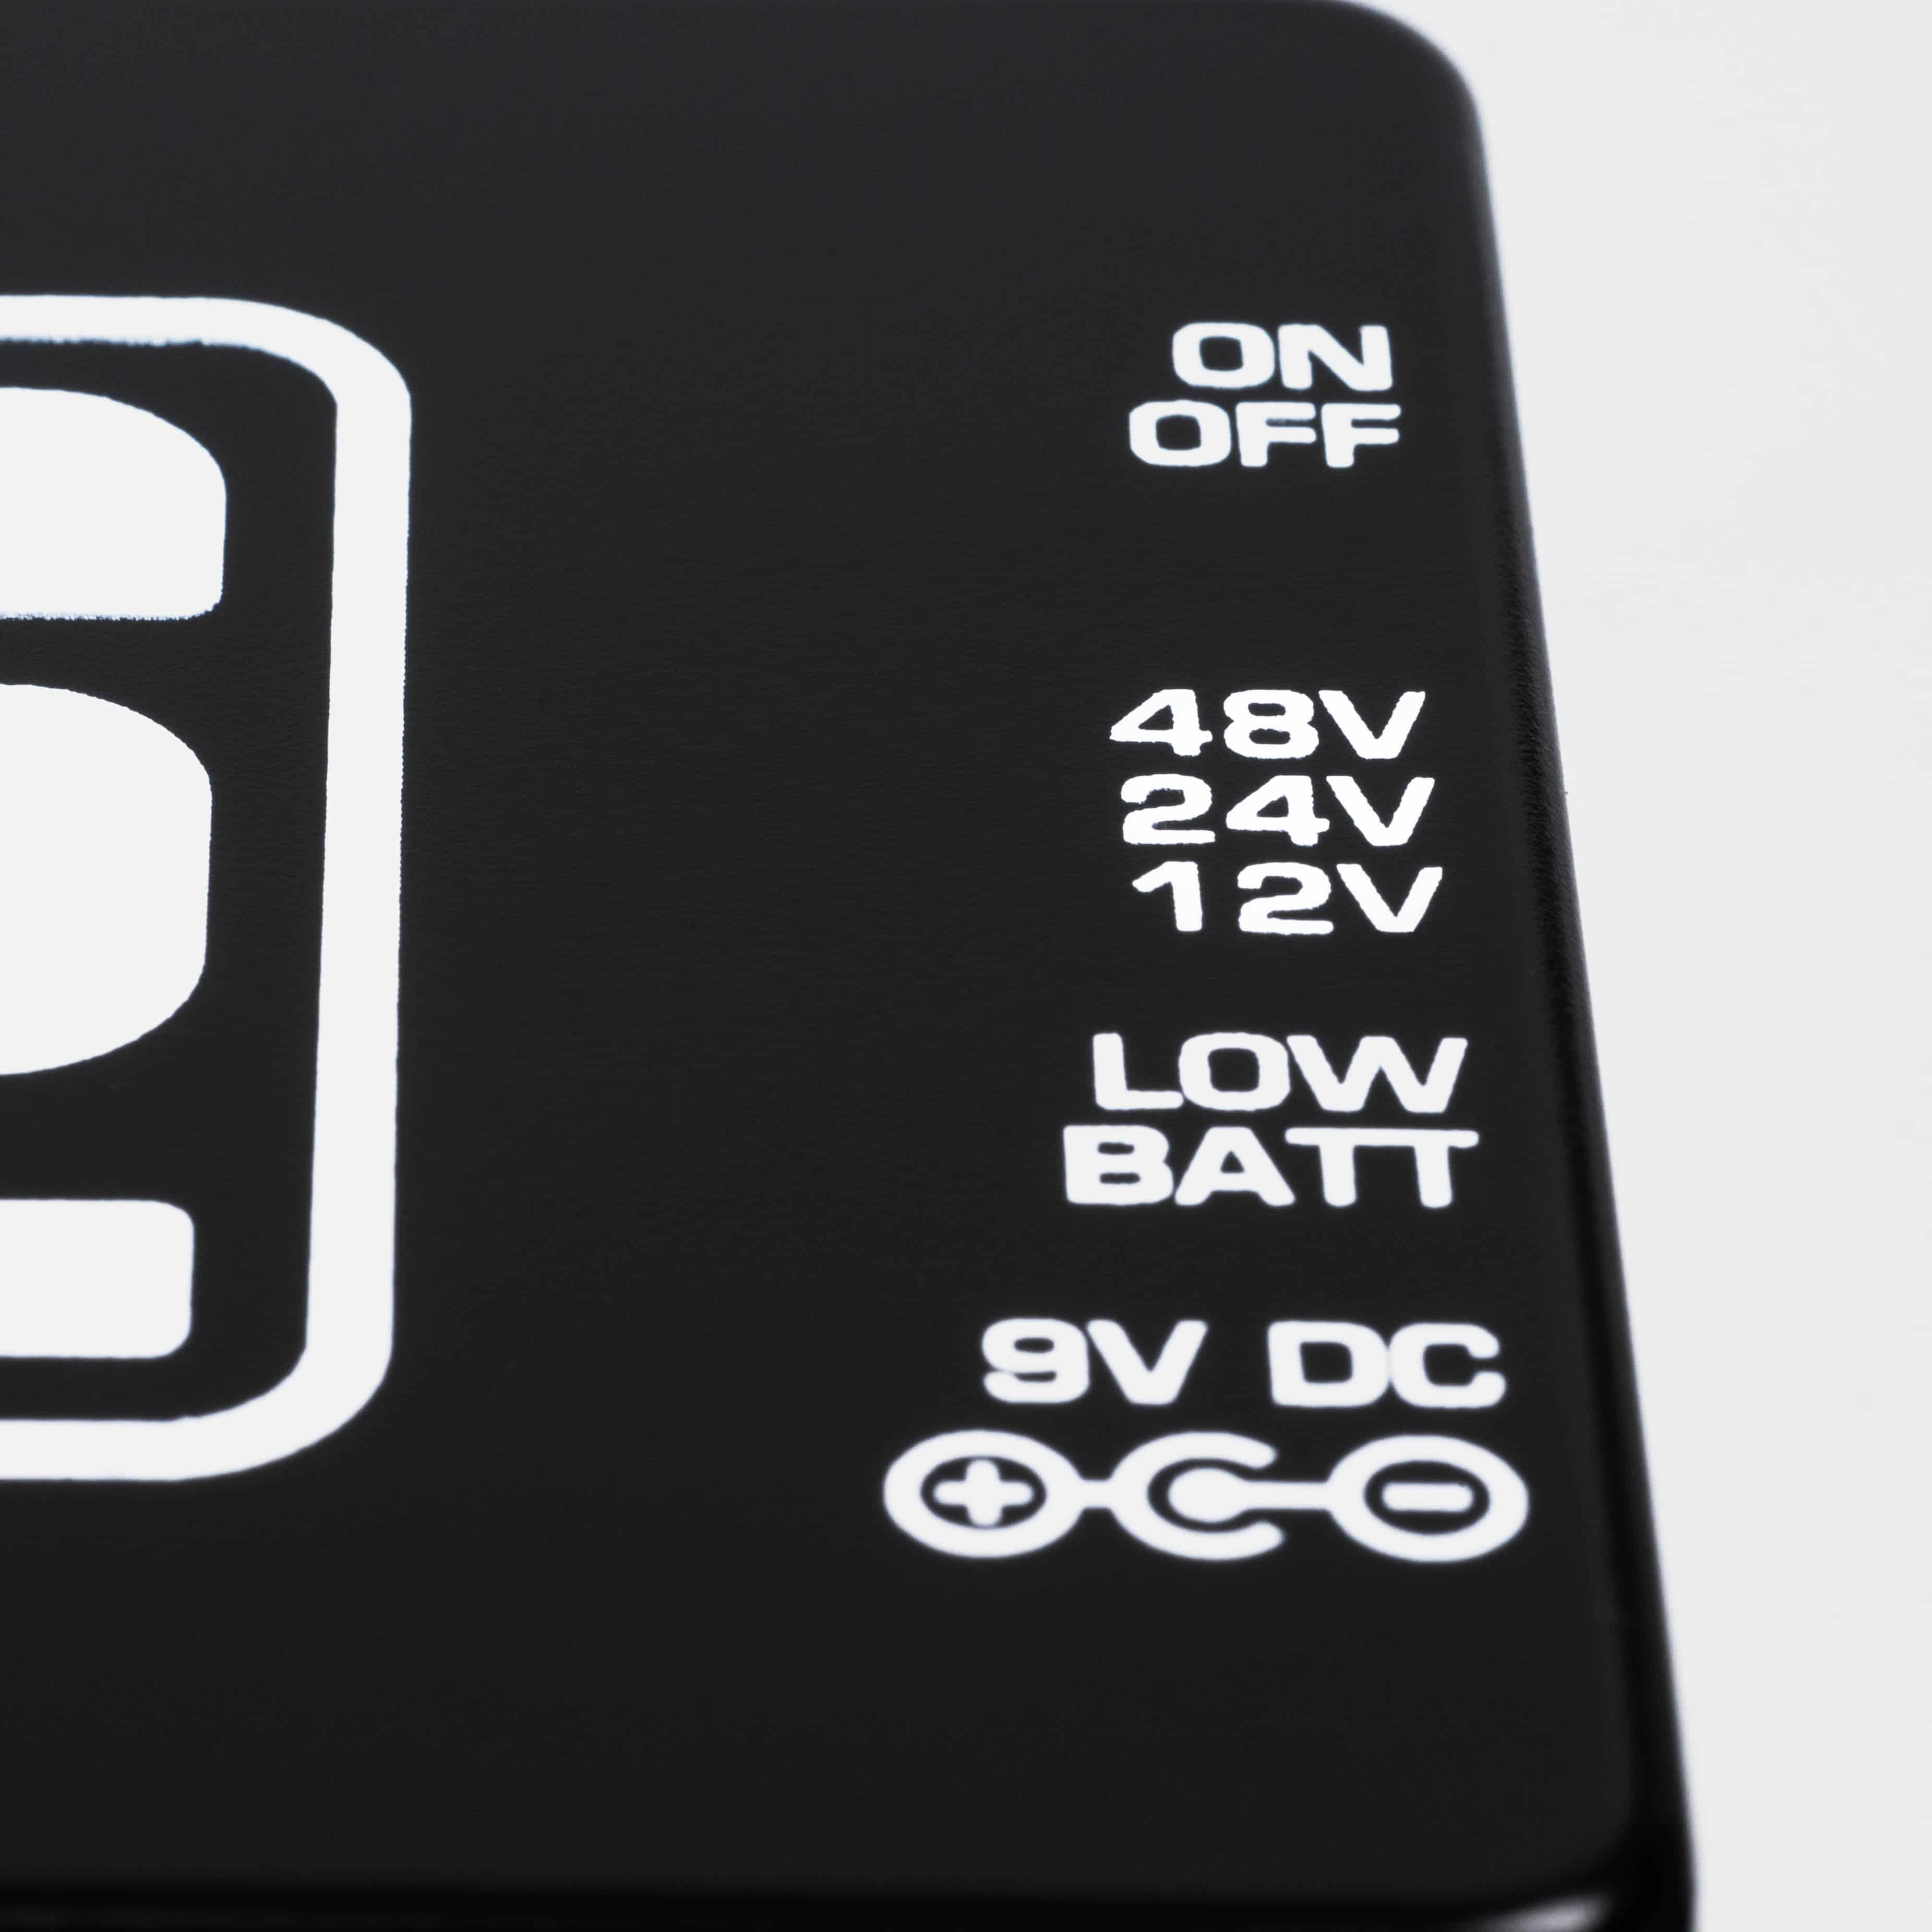 SWITCHABLE VOLTAGE LEVELS